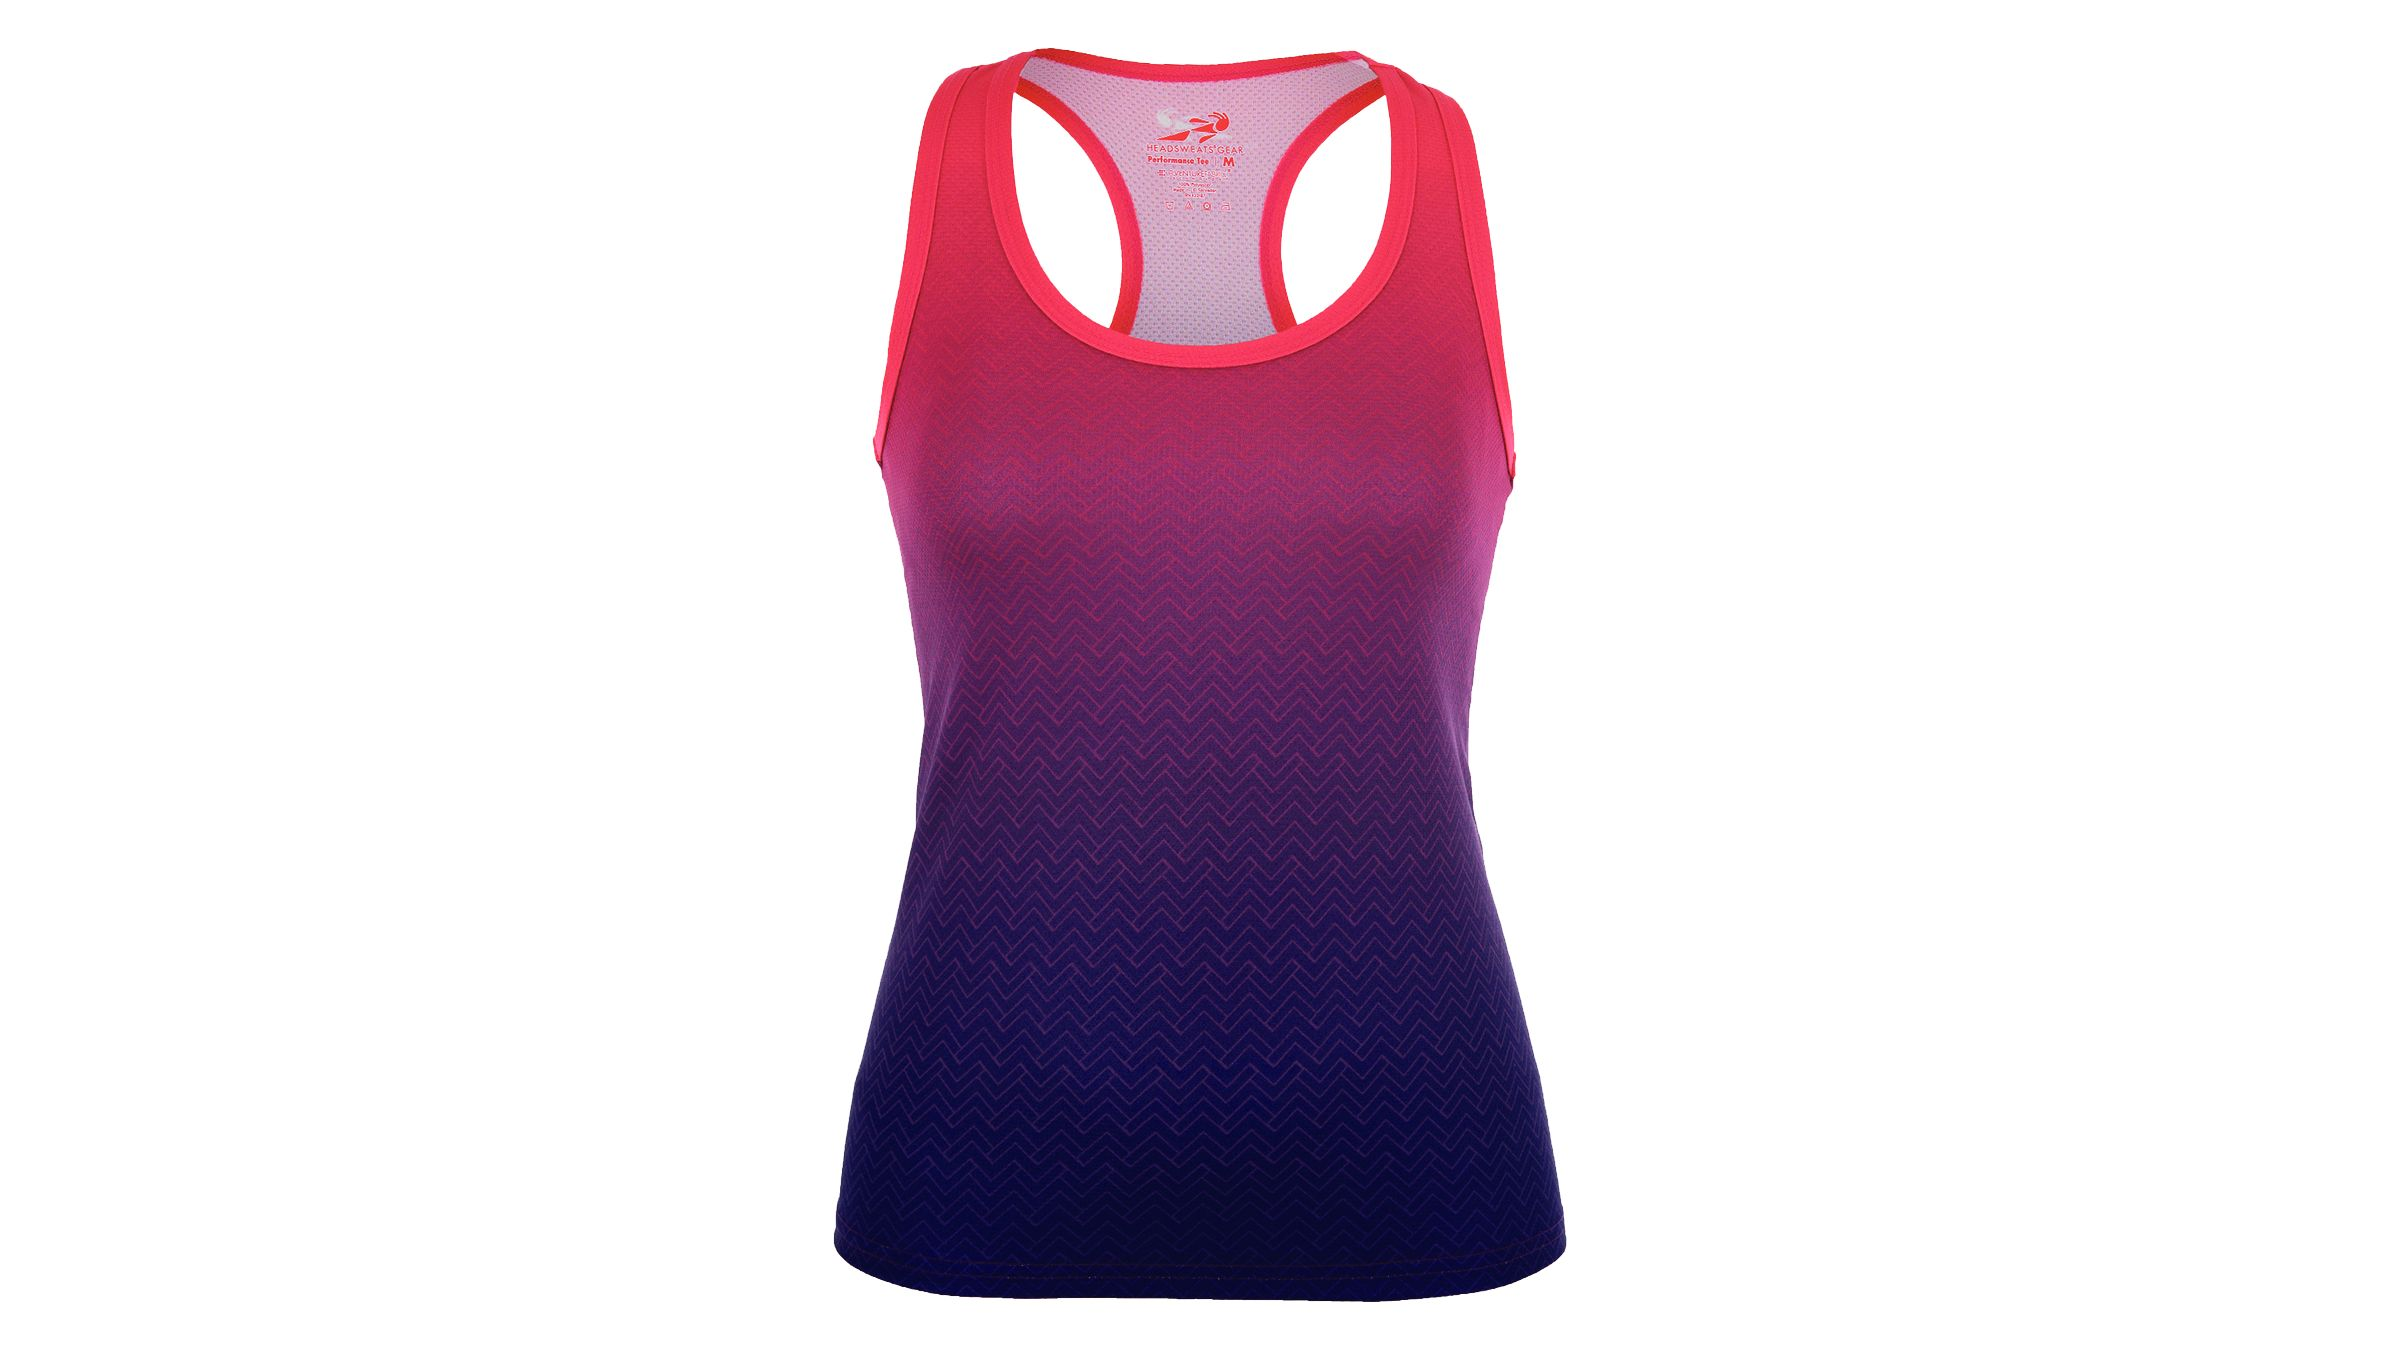 Pink to purple gradient Headsweats Berries Singlet tank top